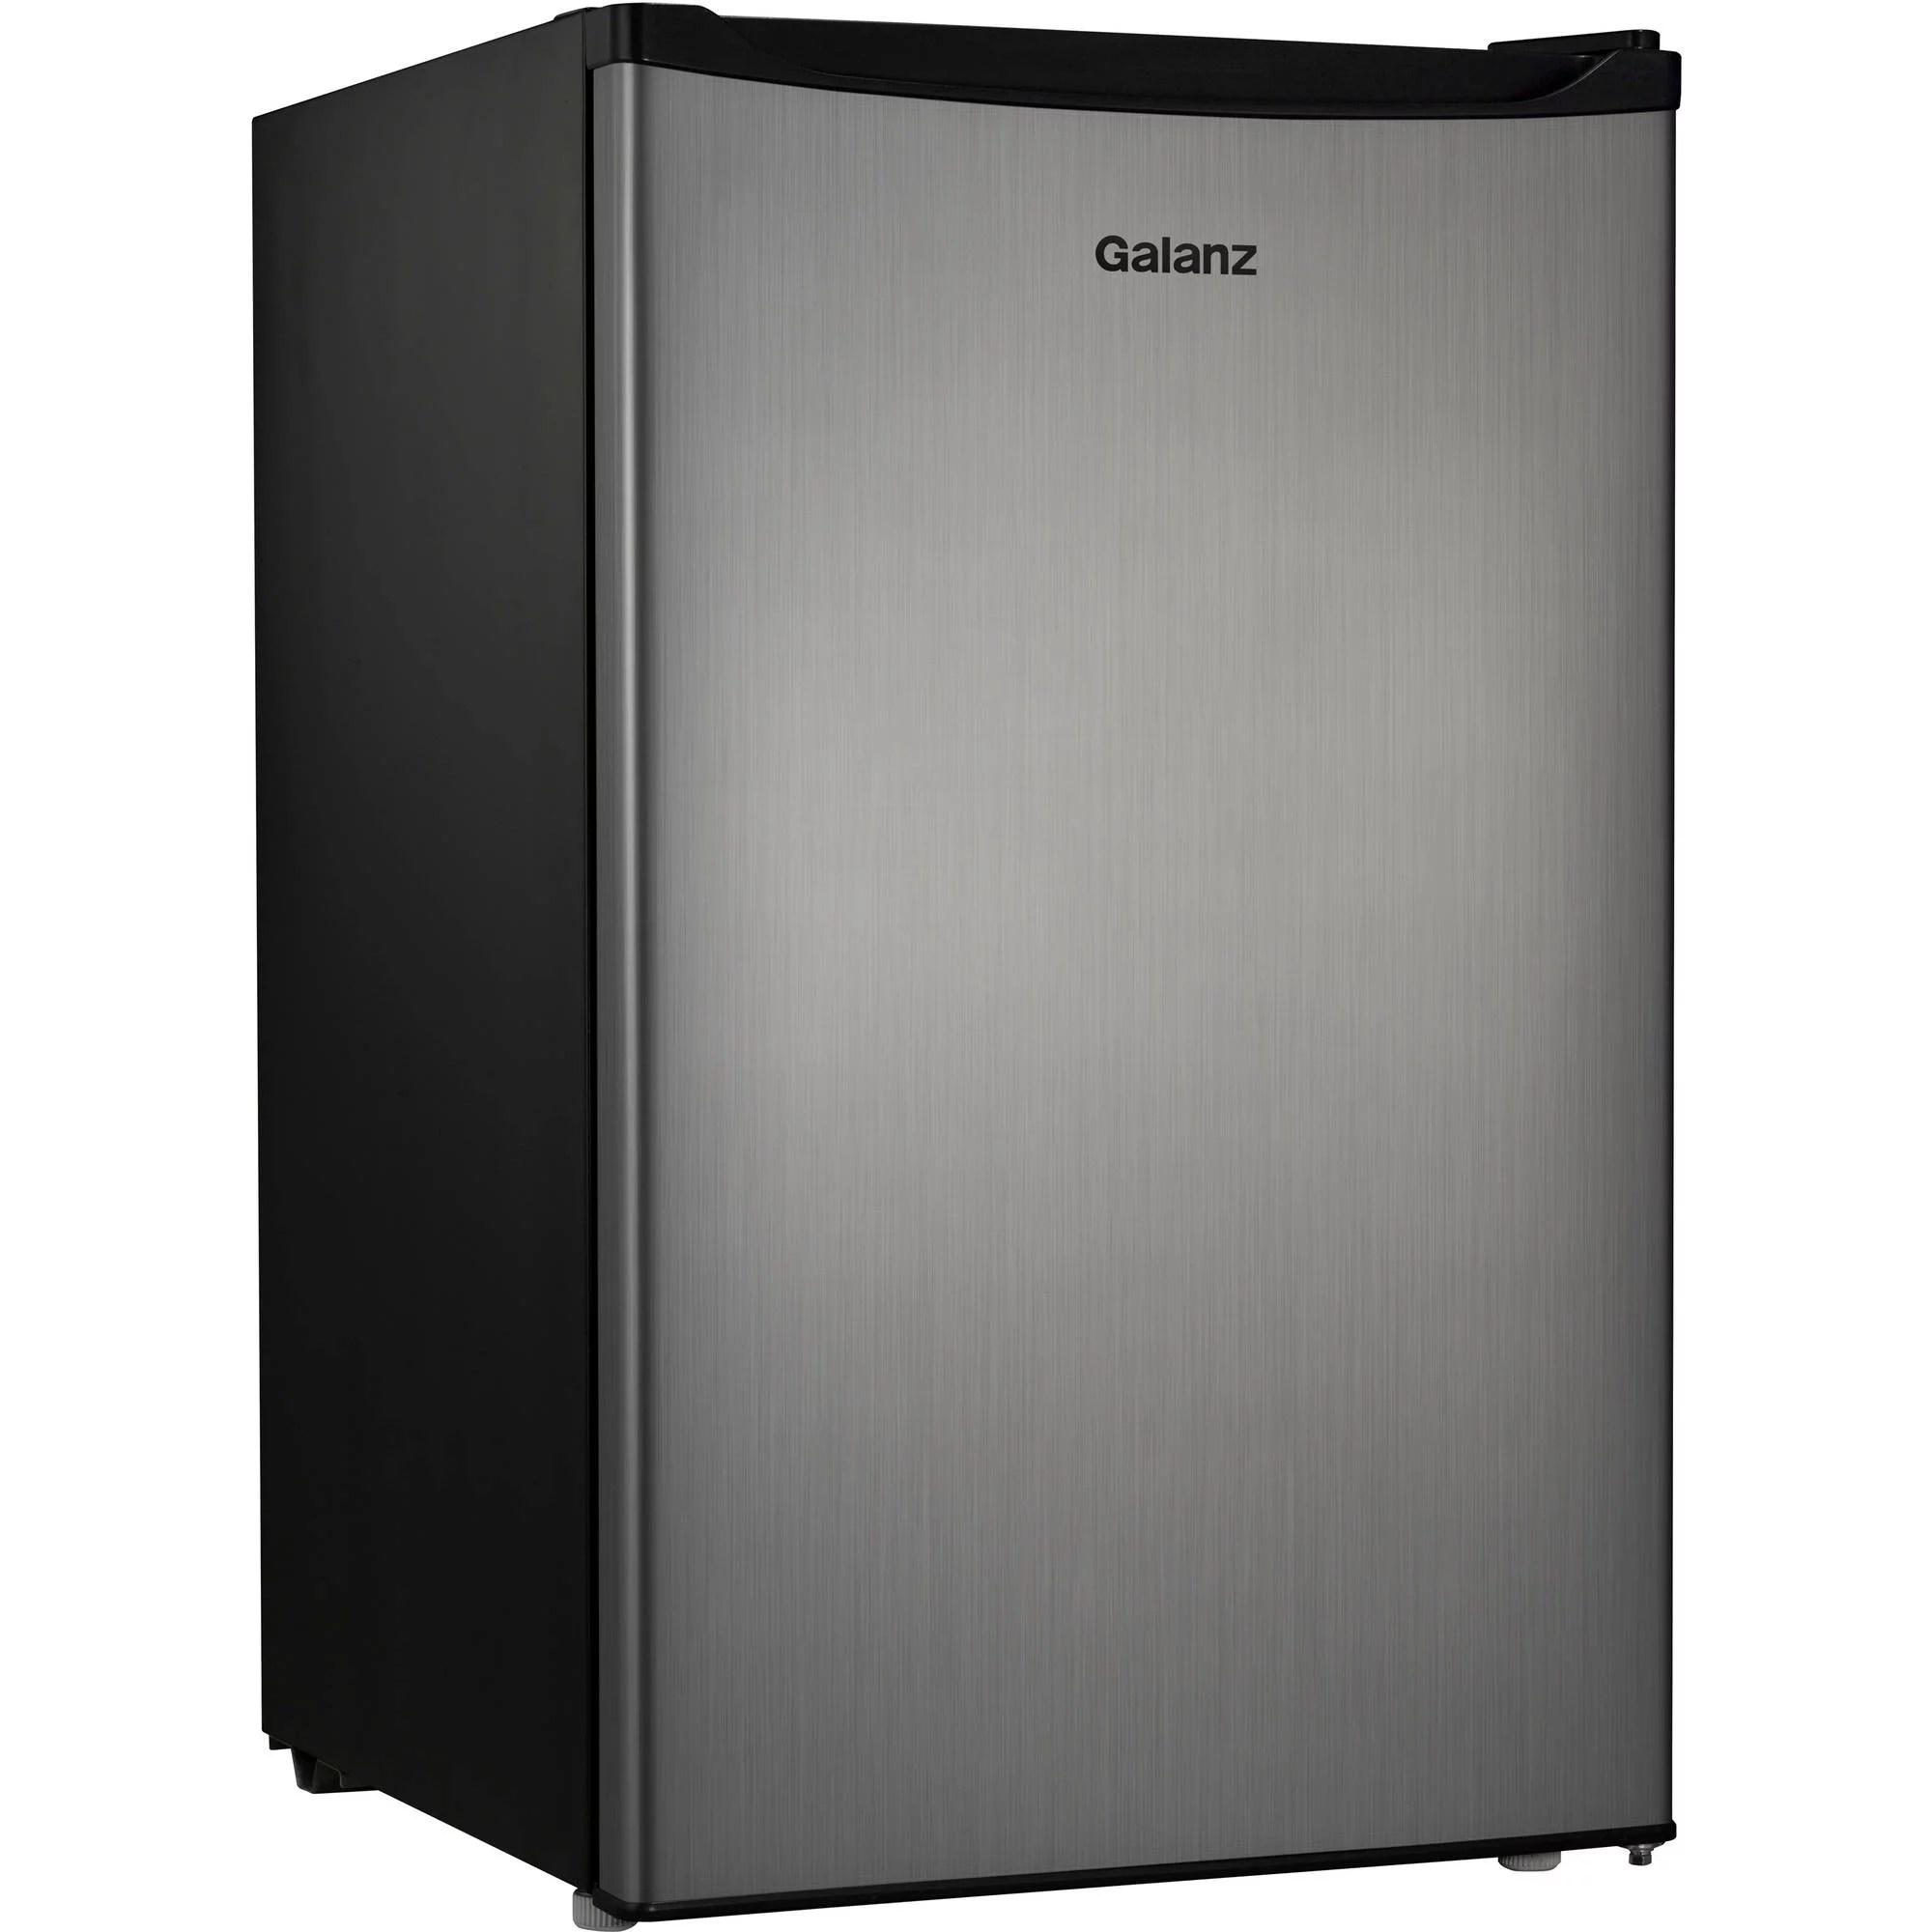 New Refrigerator Price Buy Galanz 4 3 Cu Ft Compact Single Door Refrigerator Stainless